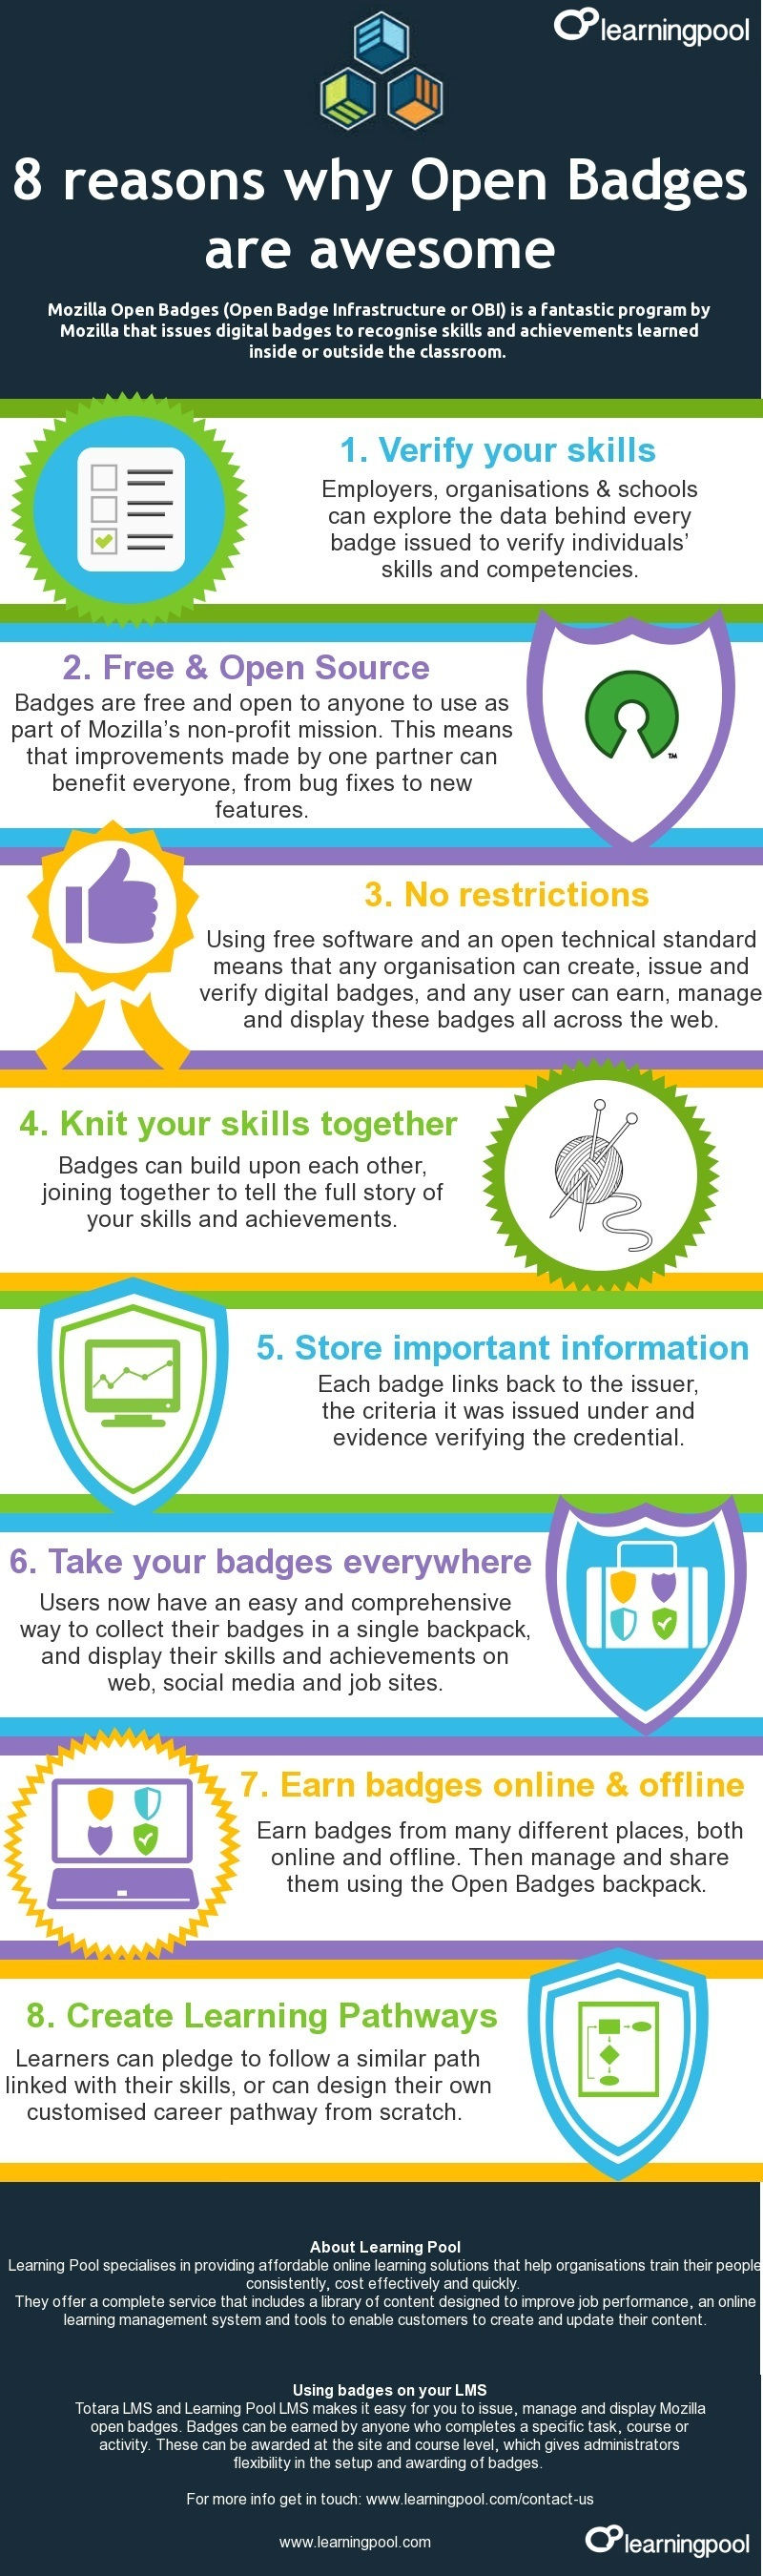 8 Reasons Why Open Badges Are Awesome Infographic